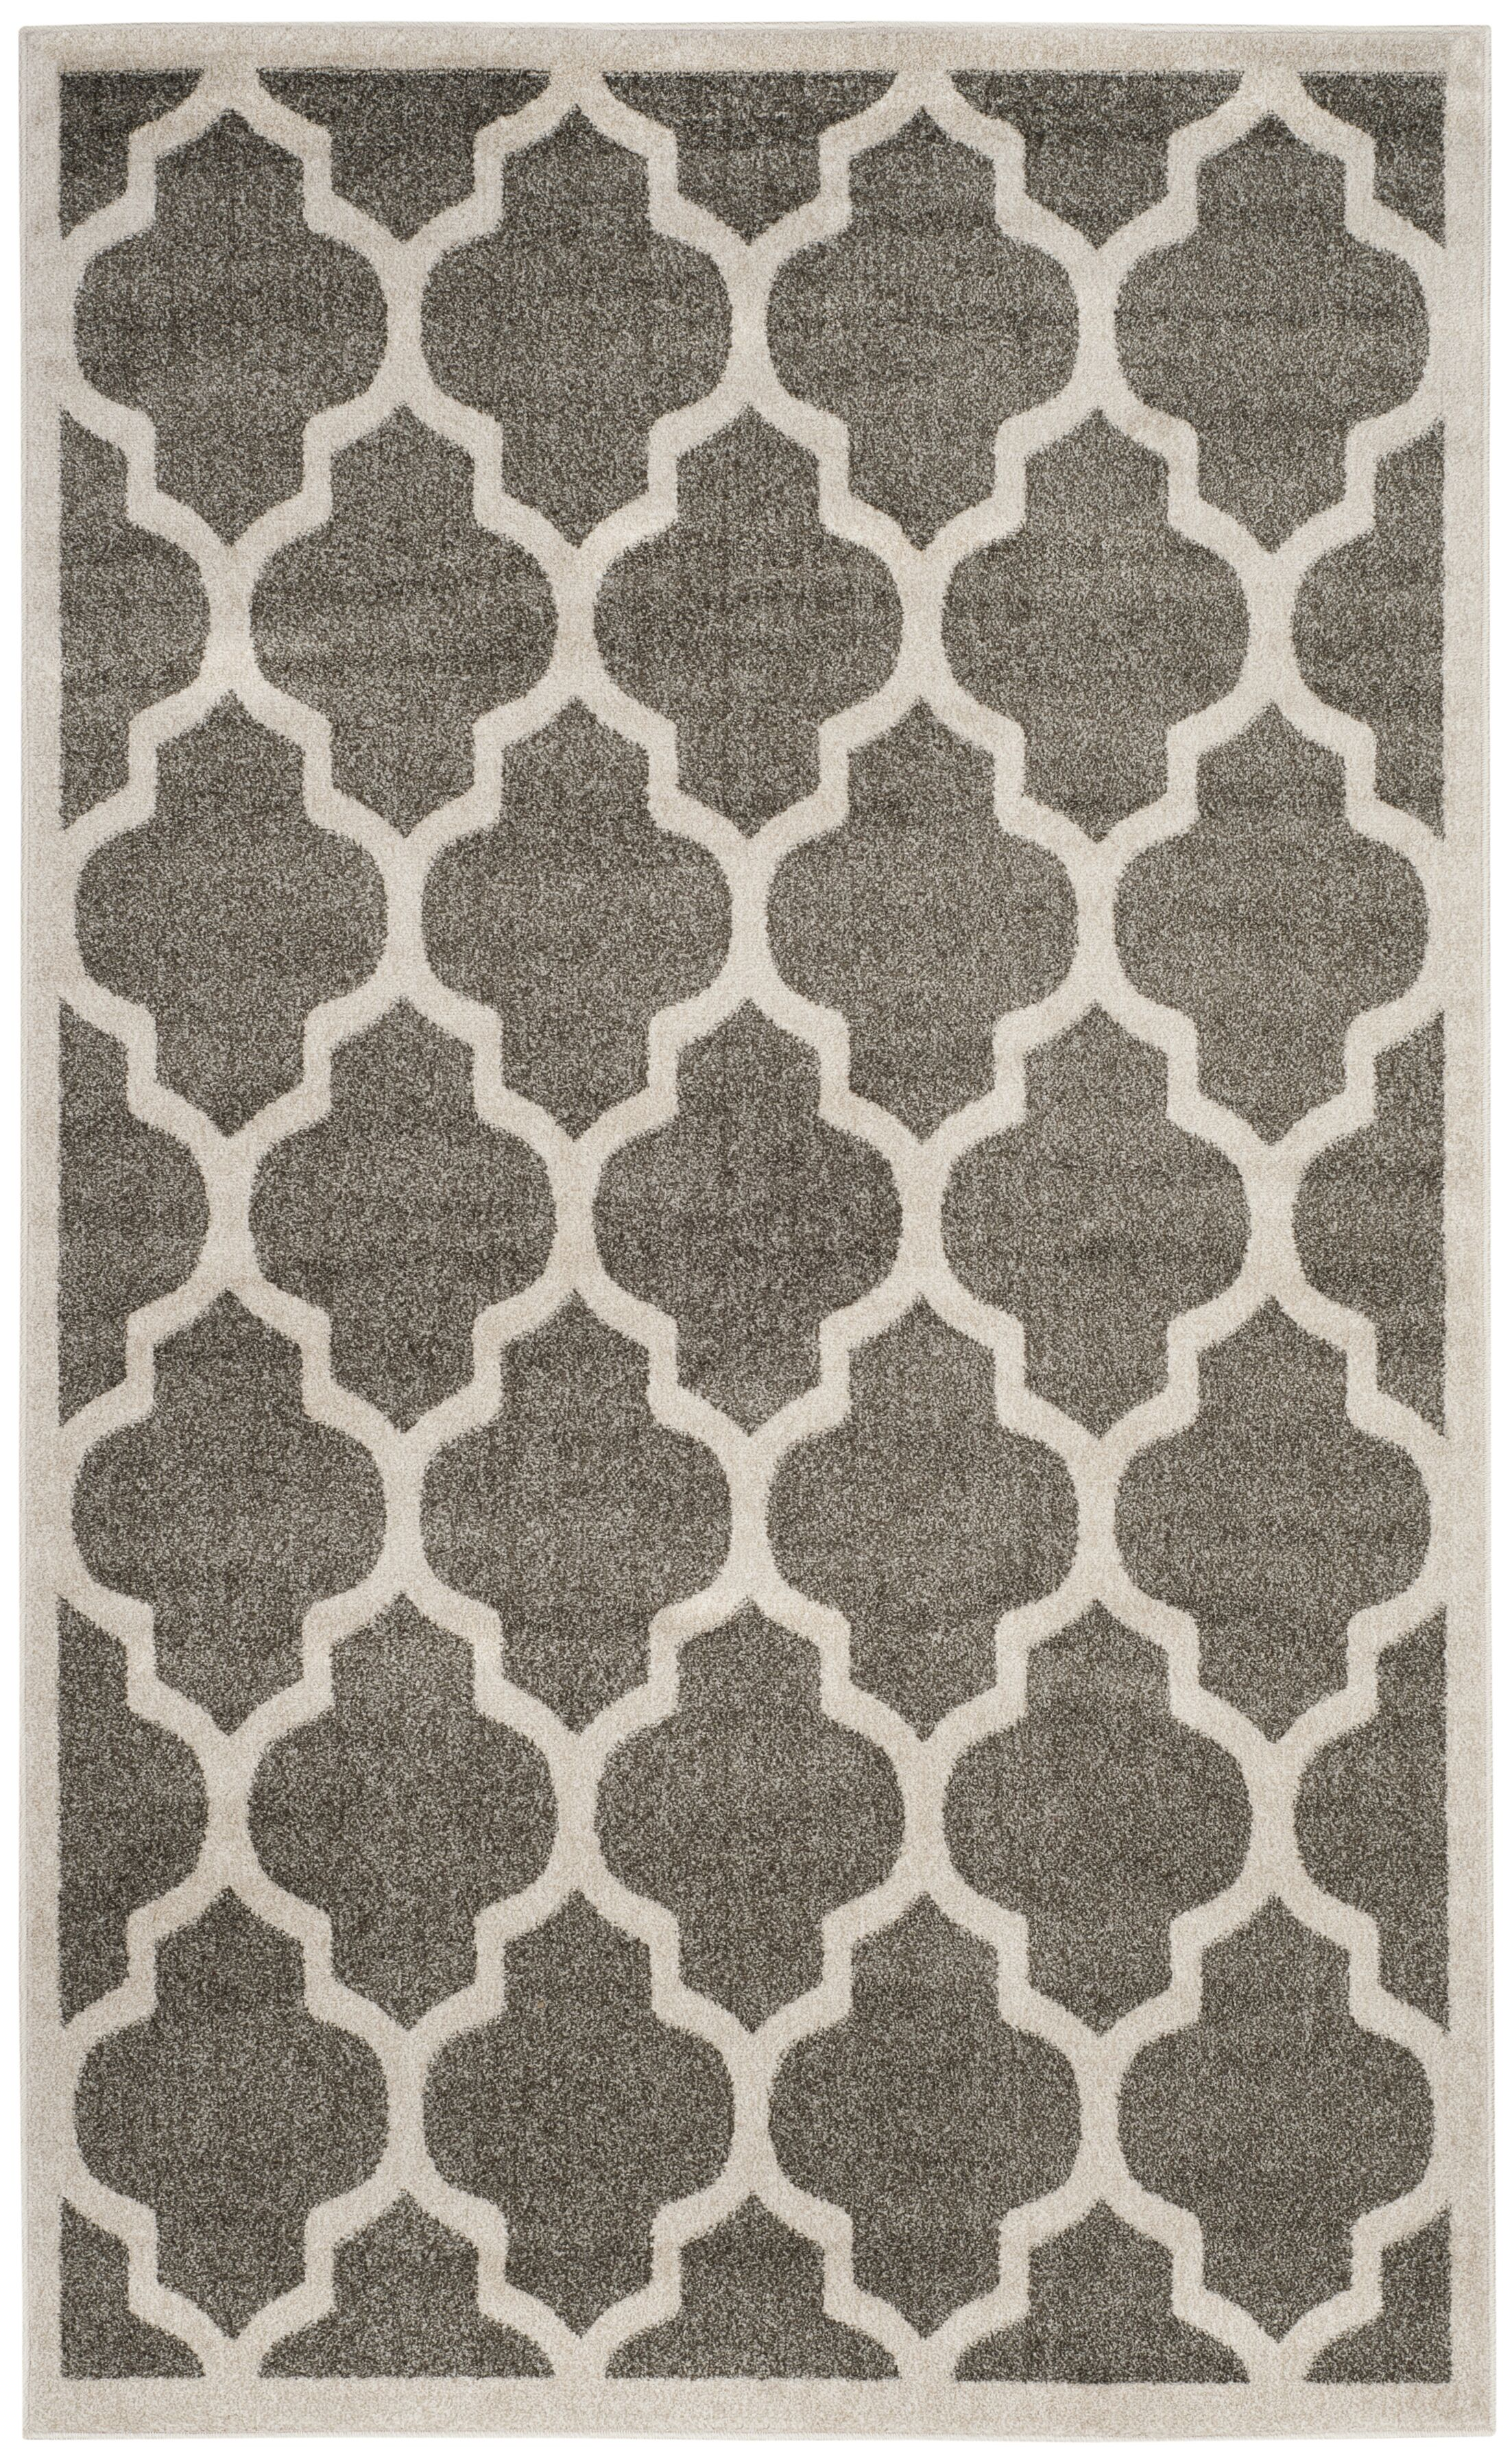 Carman Gray/Beige Indoor/Outdoor Area Rug Rug Size: Rectangle 6' x 9'